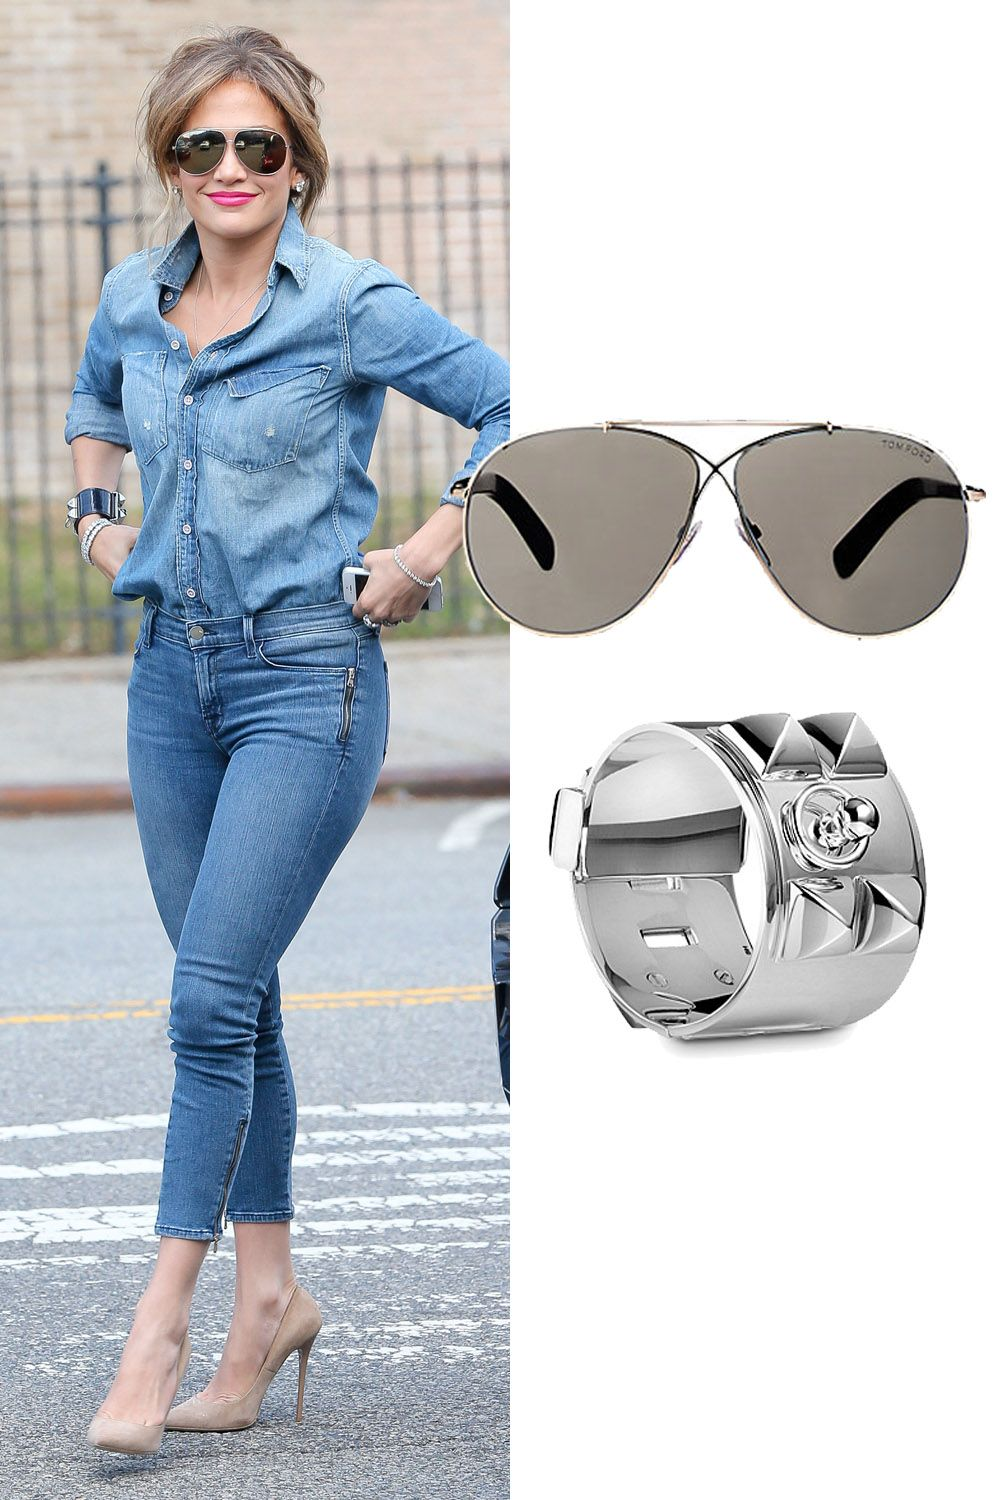 "J.Lo sticks to silver accents.   Hermes Collier de Chien Silver Bracelet, $4,300; &lt;a target=""_blank"" href=""http://usa.hermes.com/jewelry/silver-jewelry/bracelets/configurable-product-106515b.html""&gt;usa.hermes.com&lt;/a&gt;  Tom Ford Eva Sunglasses, $425; &lt;a target=""_blank"" href=""http://www.barneys.com/tom-ford-eva-sunglasses-503932723.html""&gt;barneys.com&lt;/a&gt;   <!--EndFragment-->"